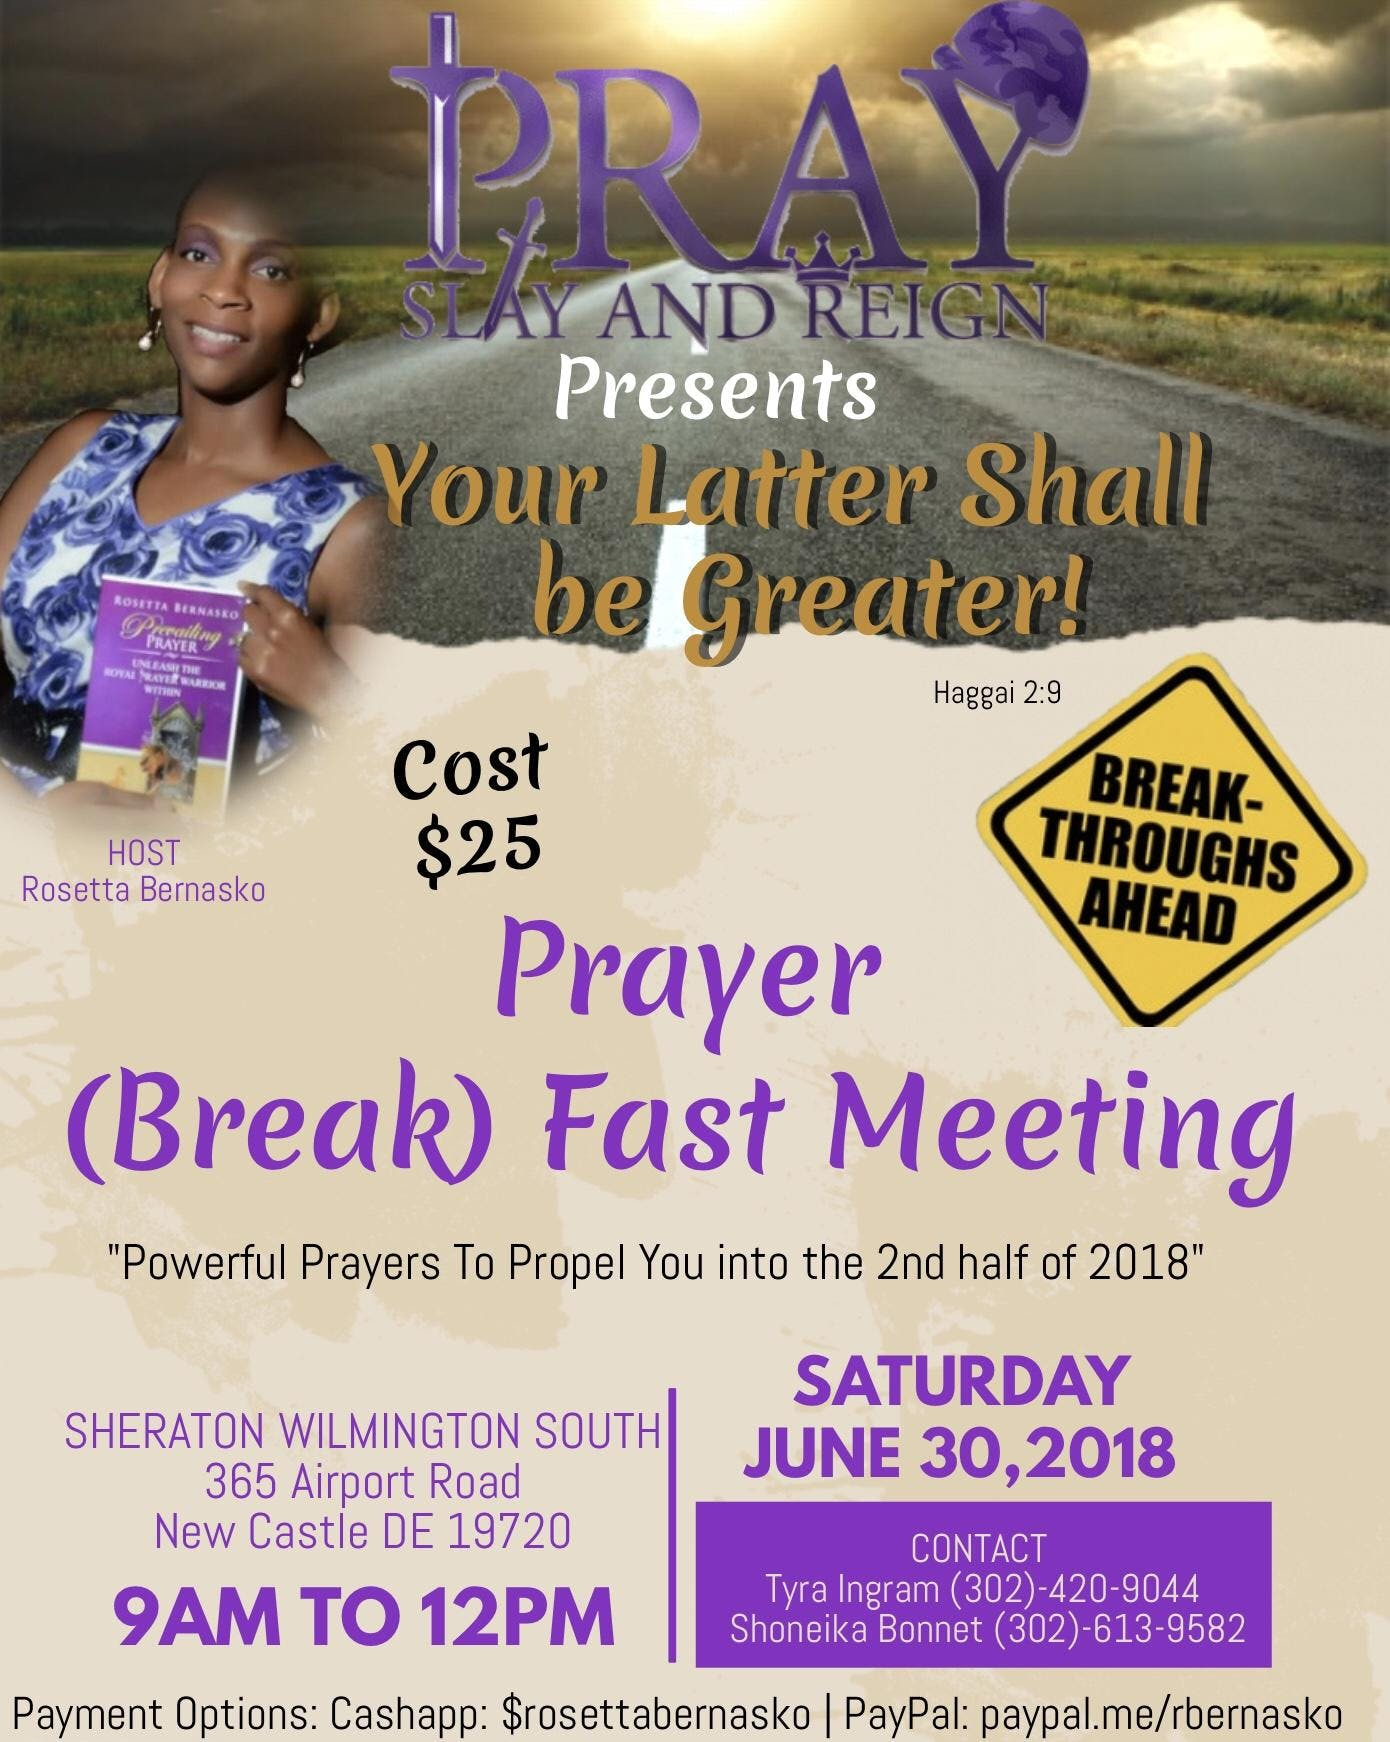 Prayer Breakfast Meeting Your Latter Shall Be Greater